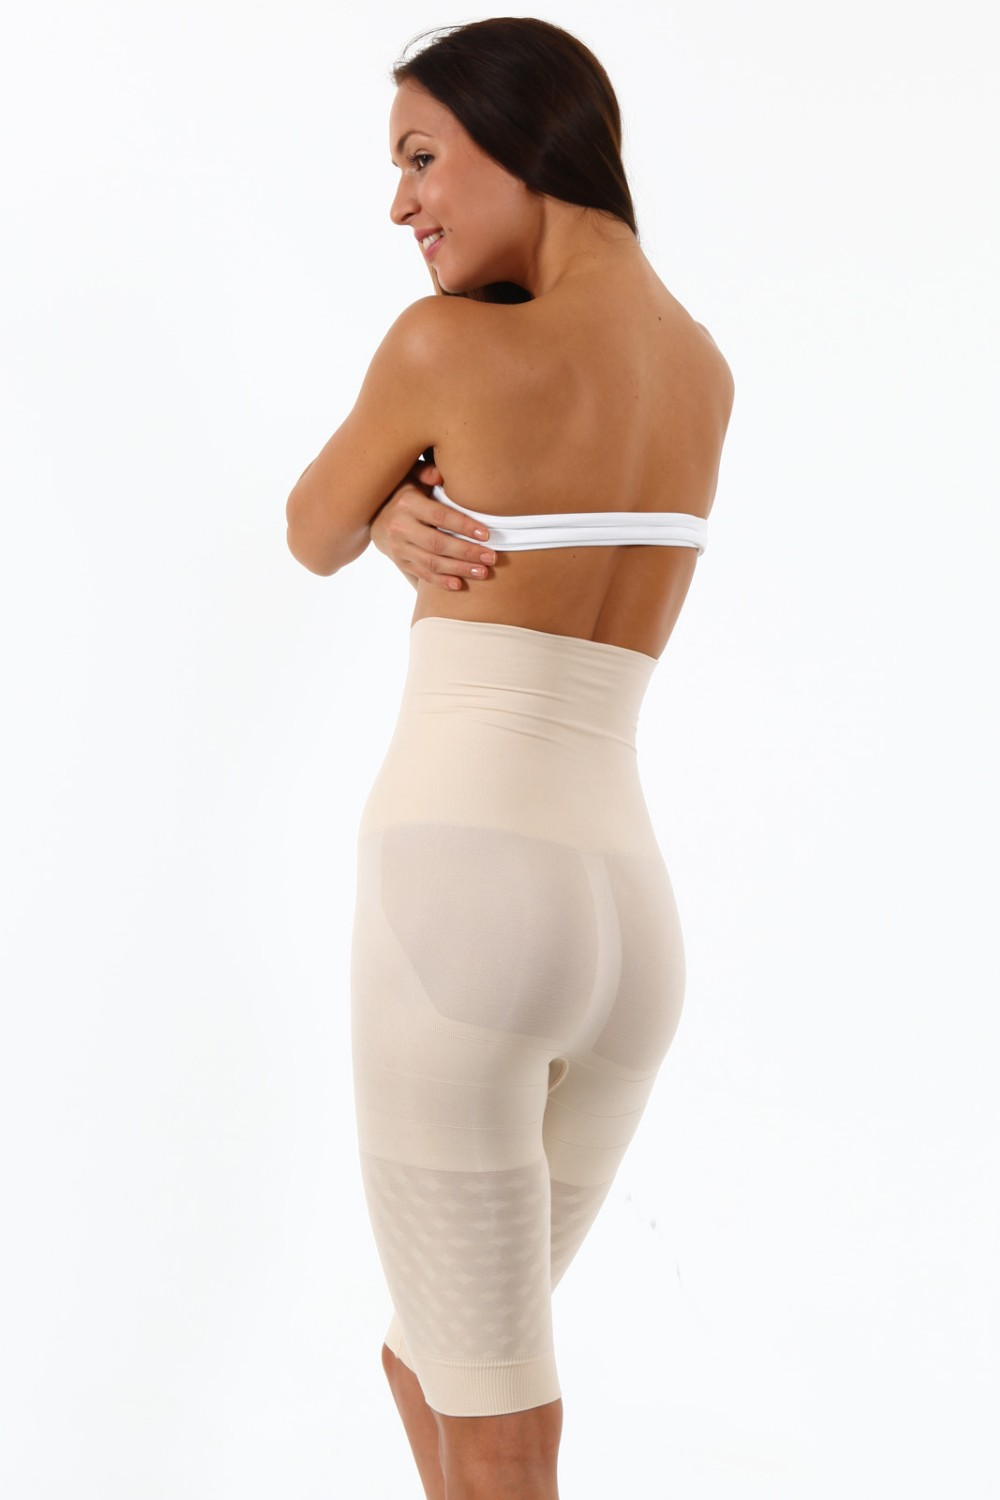 MIORRE SEAMLESS CORSET FOR CELLULITE